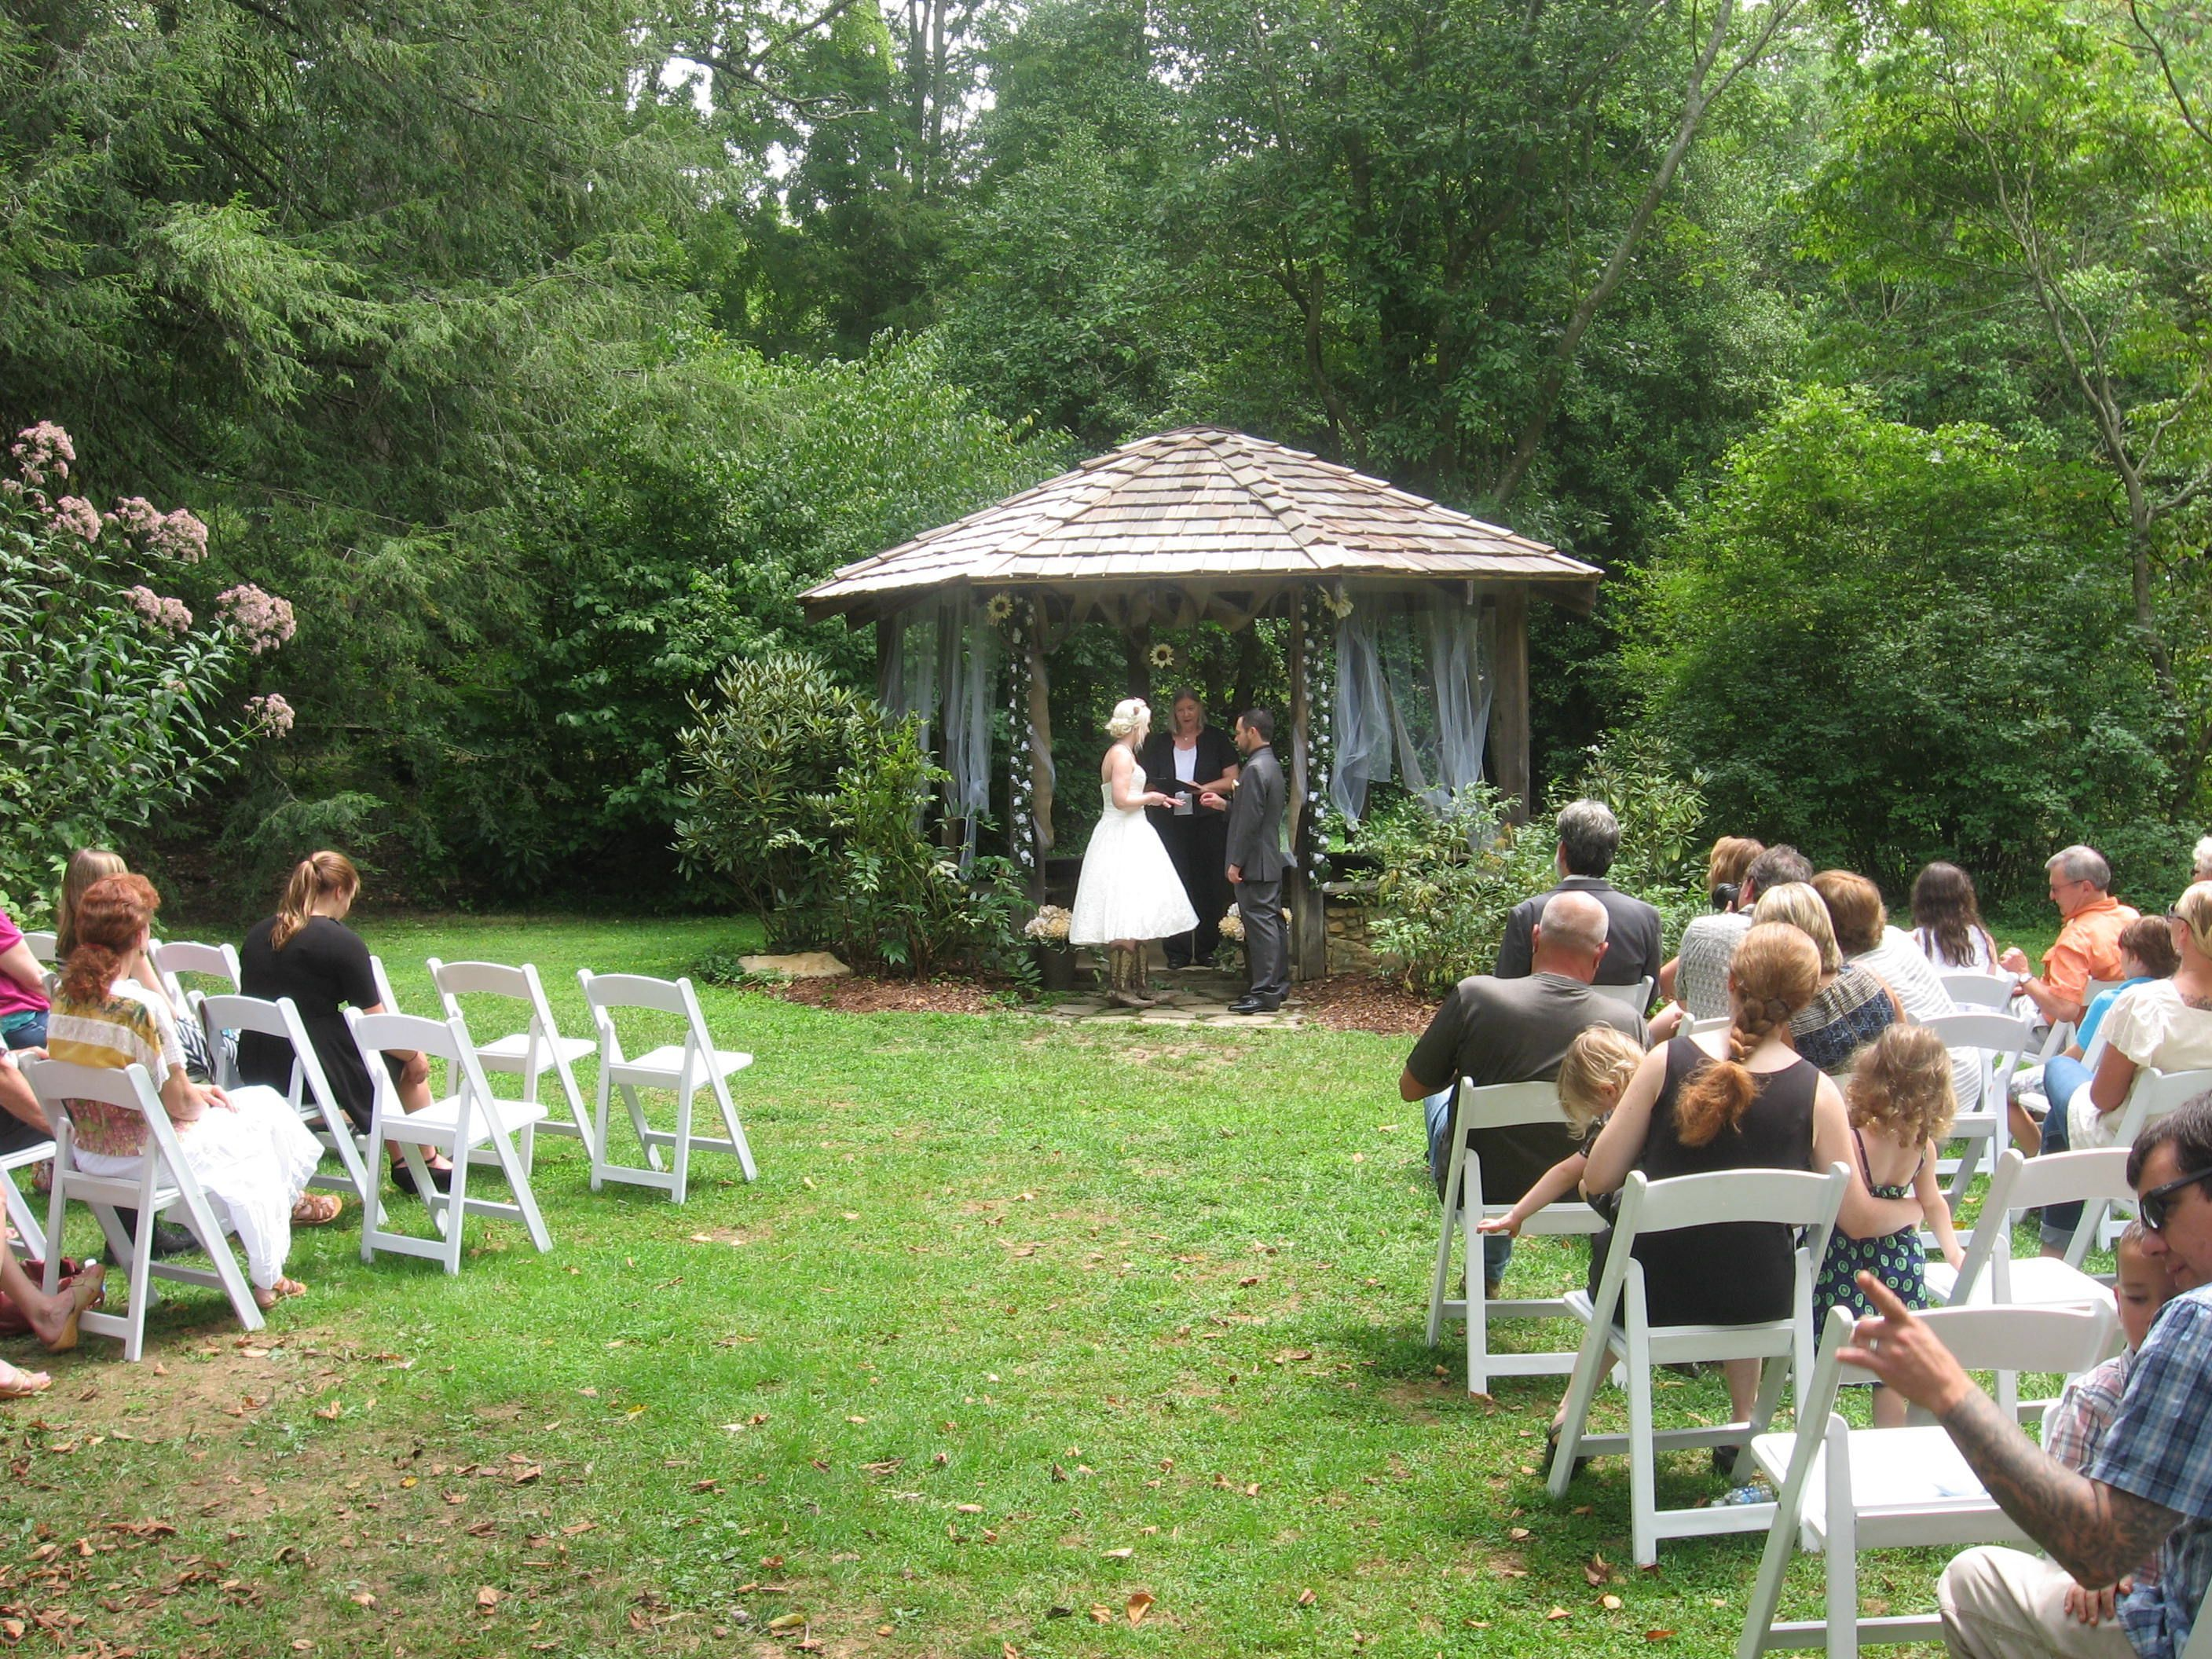 Superieur A Summer Wedding In The Gazebo At The Asheville Botanical Gardens. This Is  A Beautiful